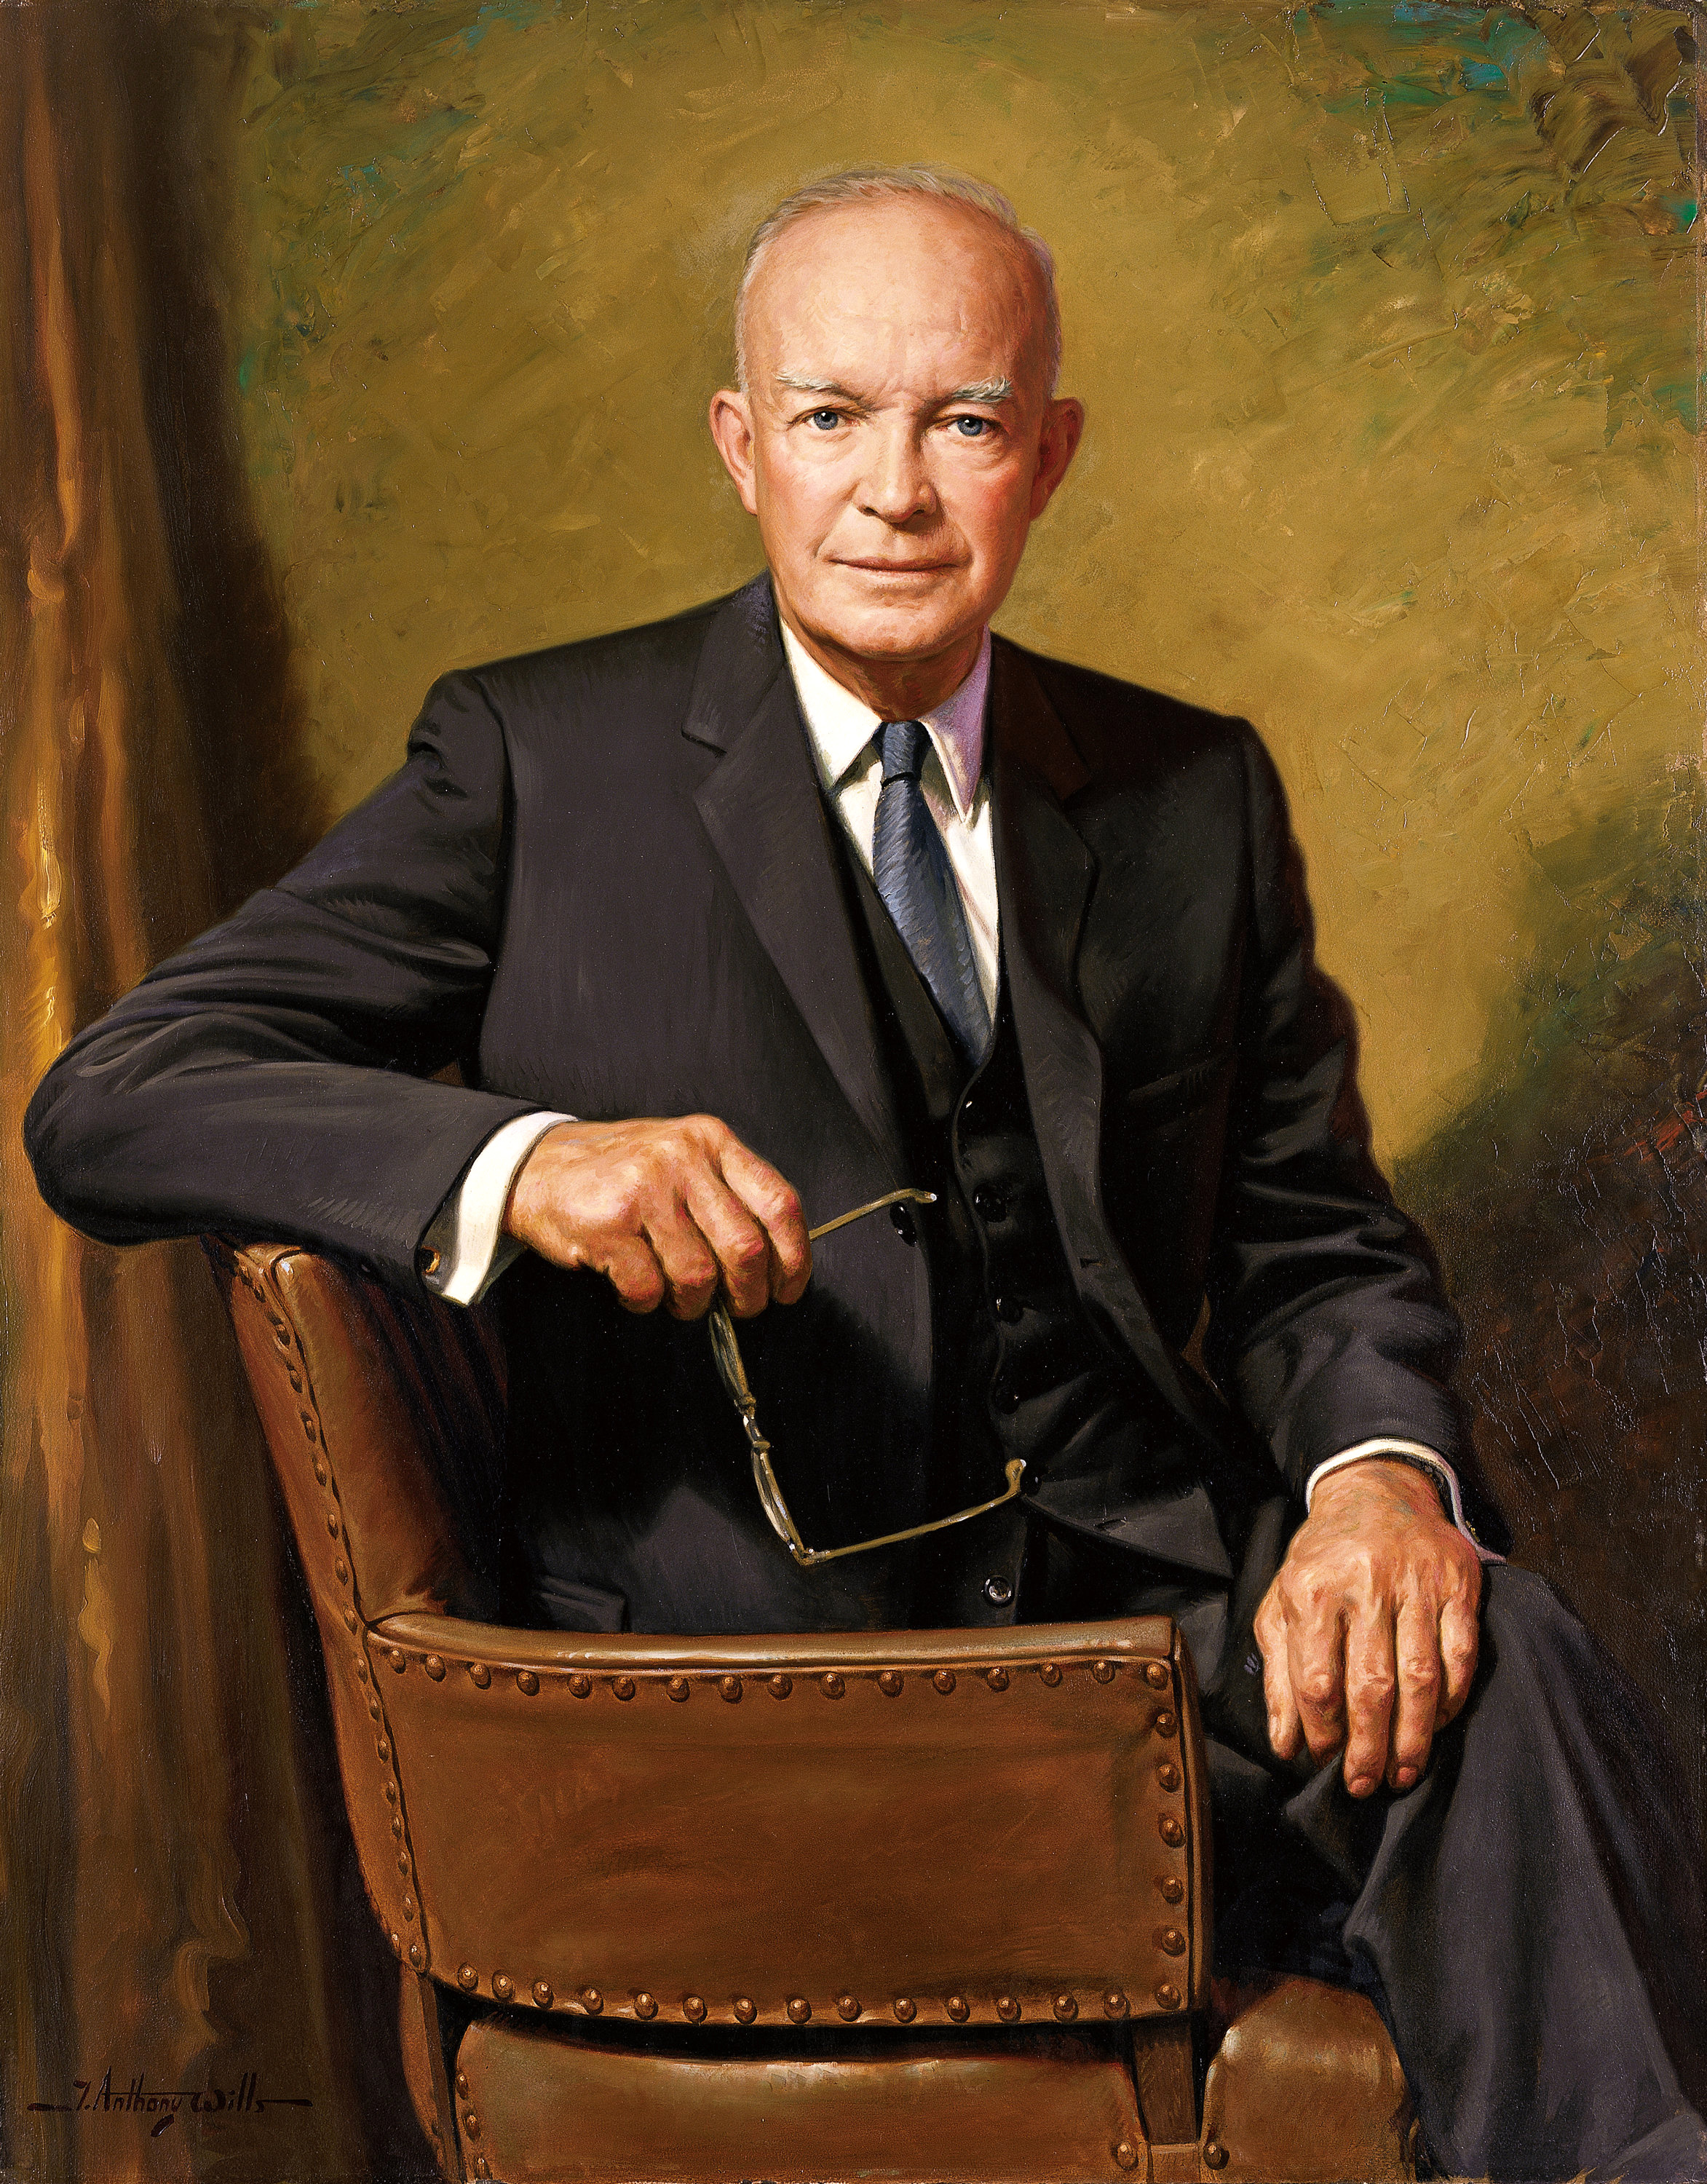 Dwight D. Eisenhower (1890-1969), 34th president of the Unites States